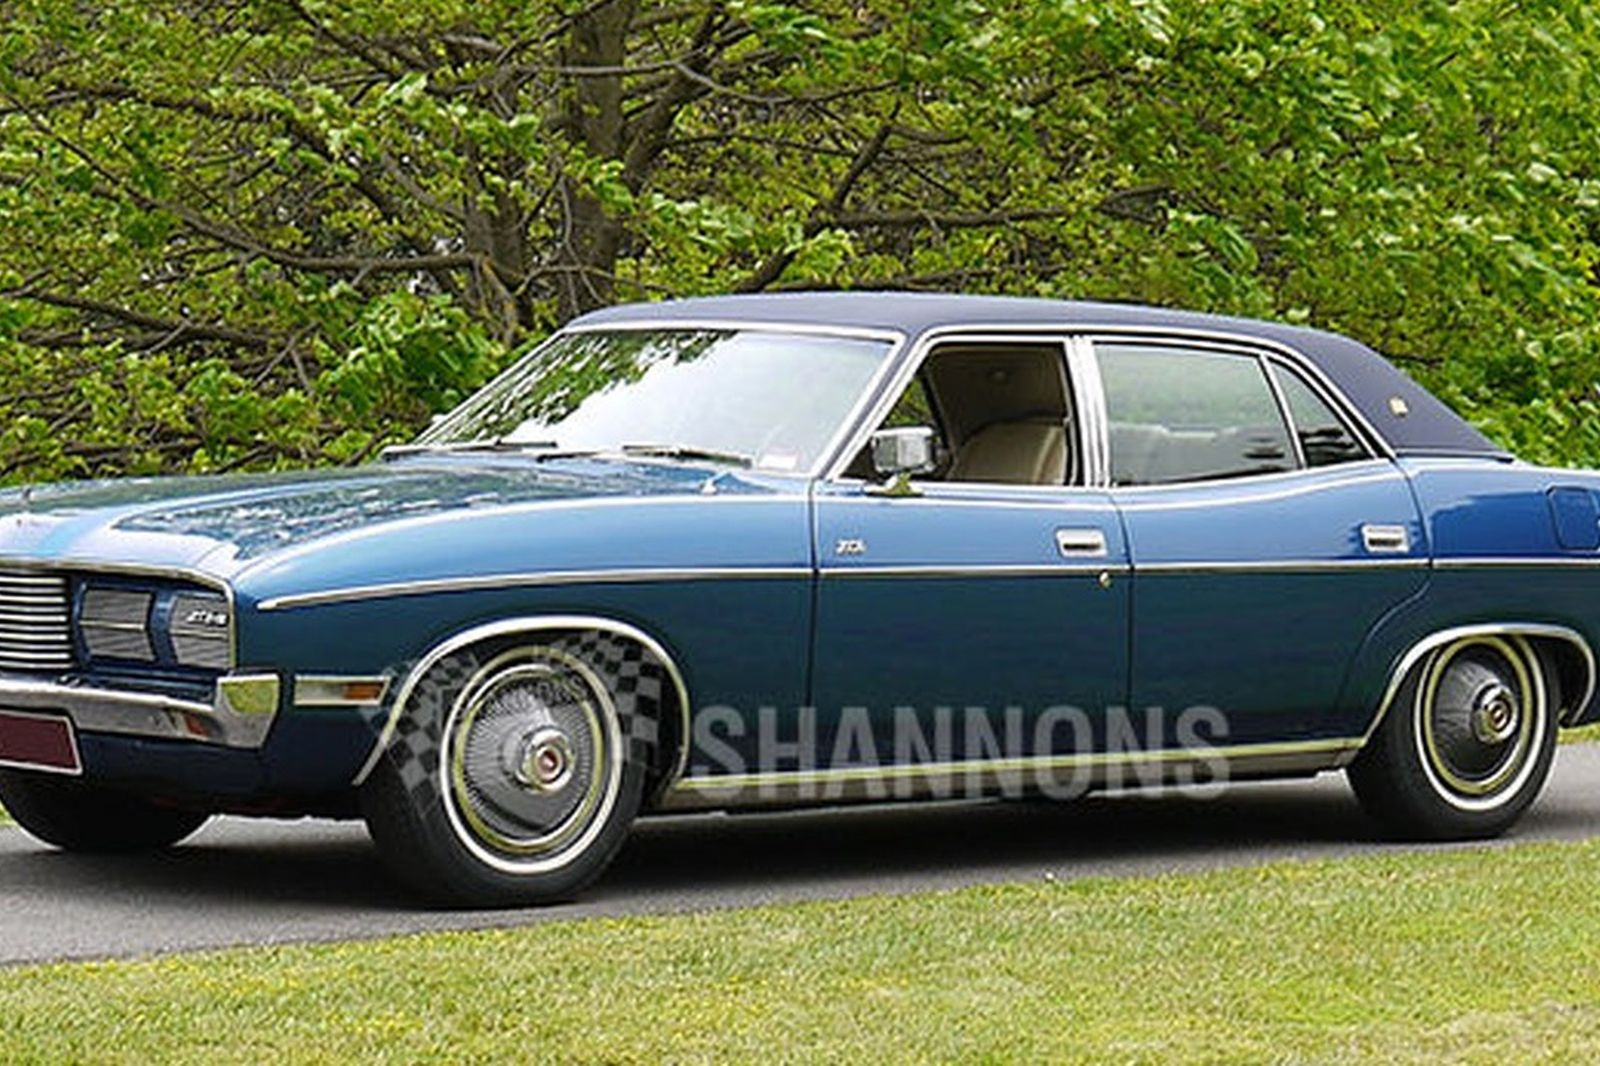 Sold: Ford LTD P5 Sedan Auctions - Lot 8 - Shannons